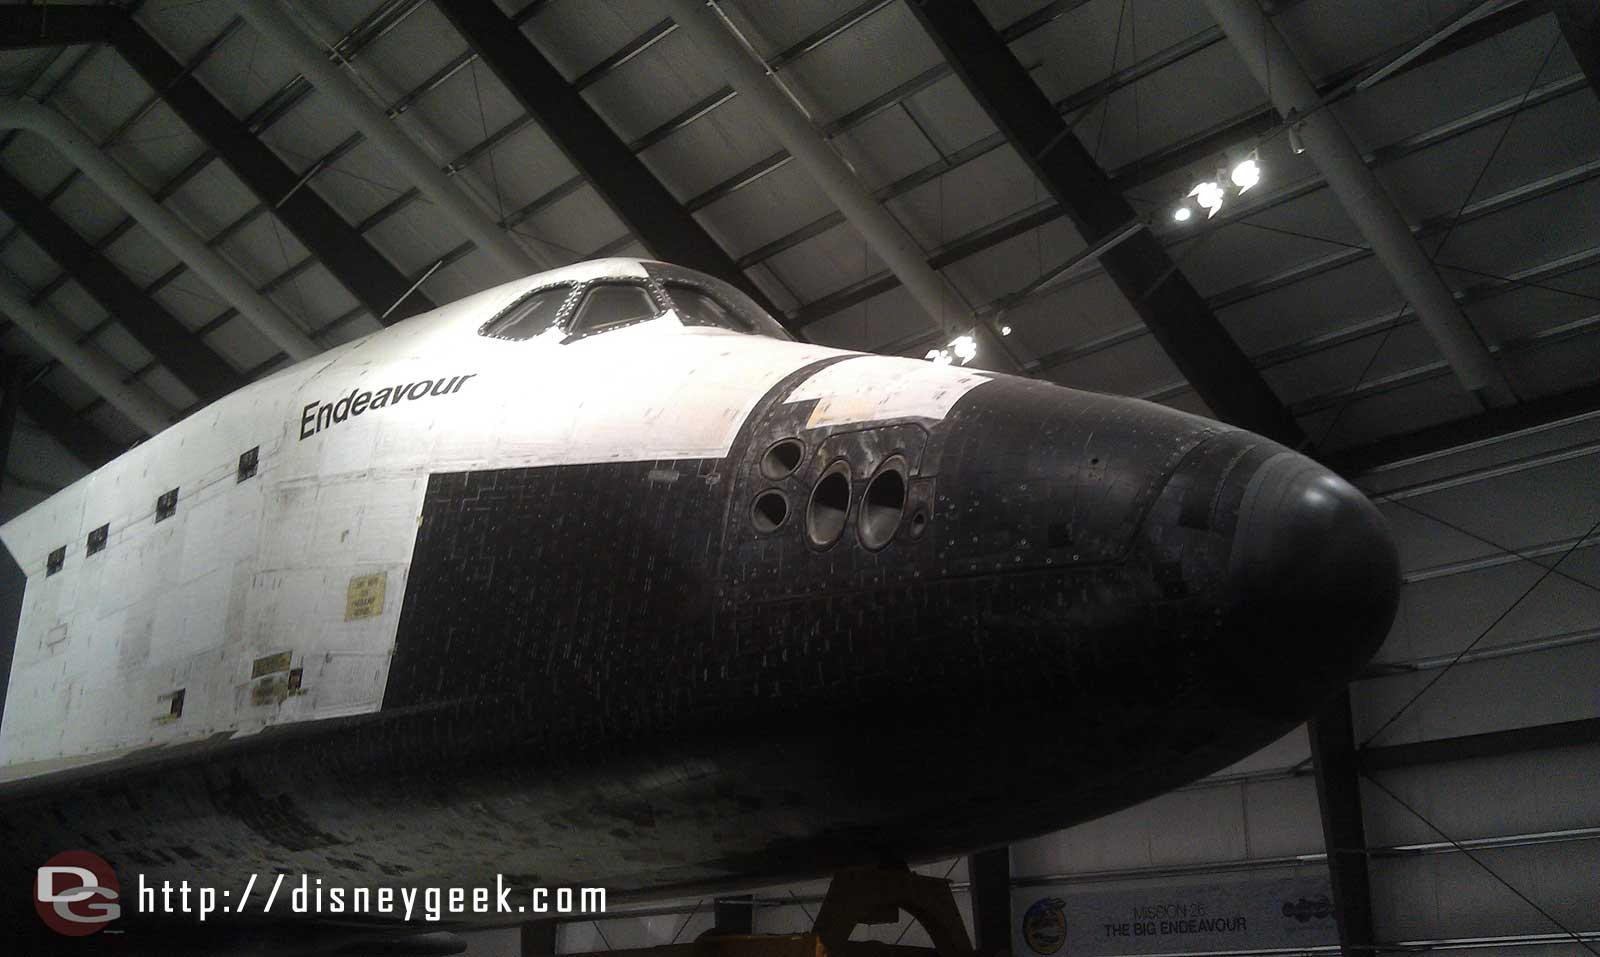 To close with the nose of Endeavour